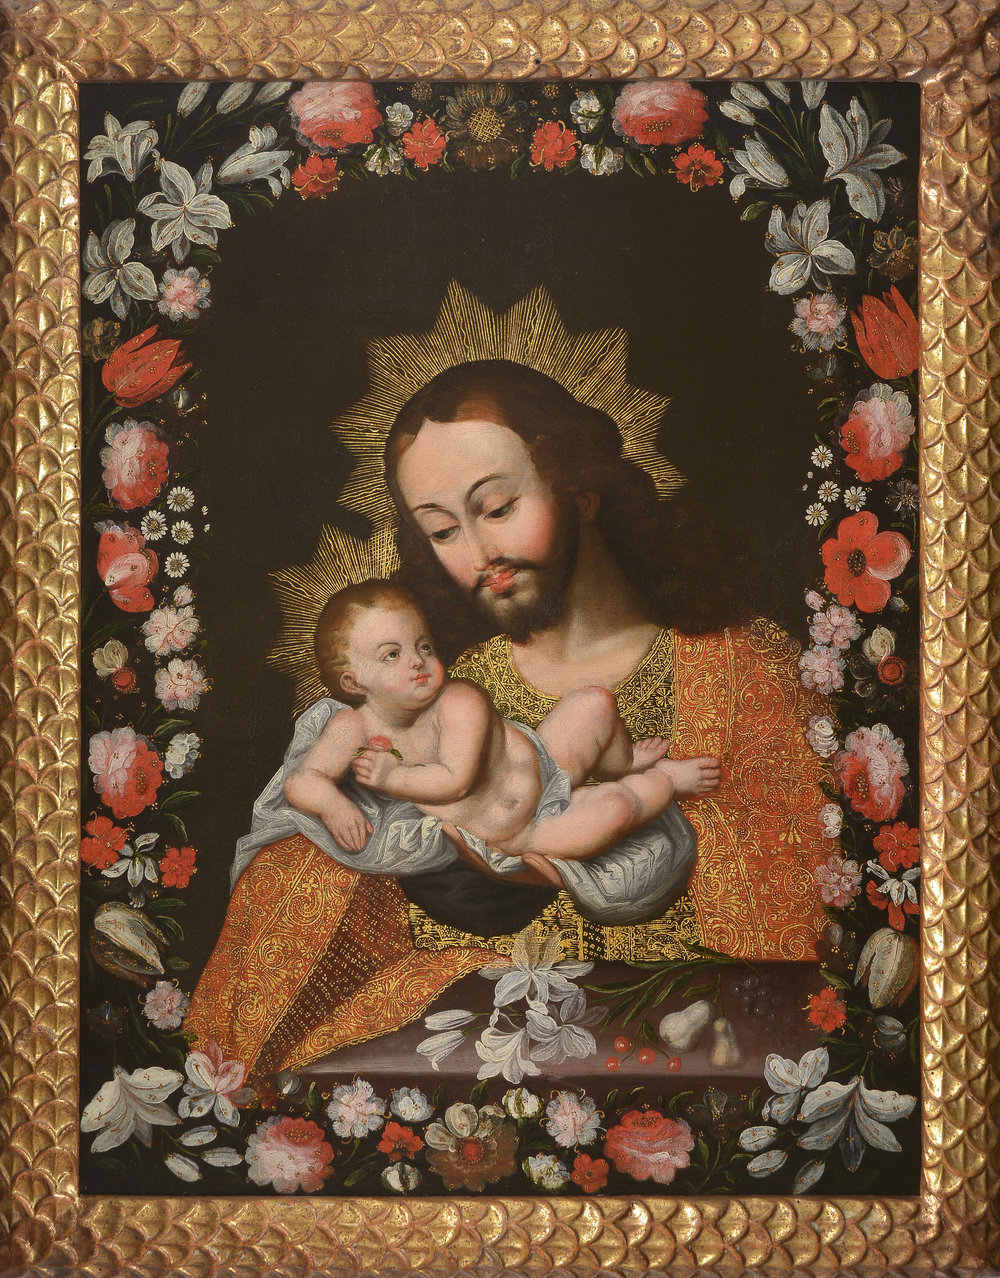 Spanish Colonial, Peruvian, Cuzco School, 17th Century, Saint Joseph and Child